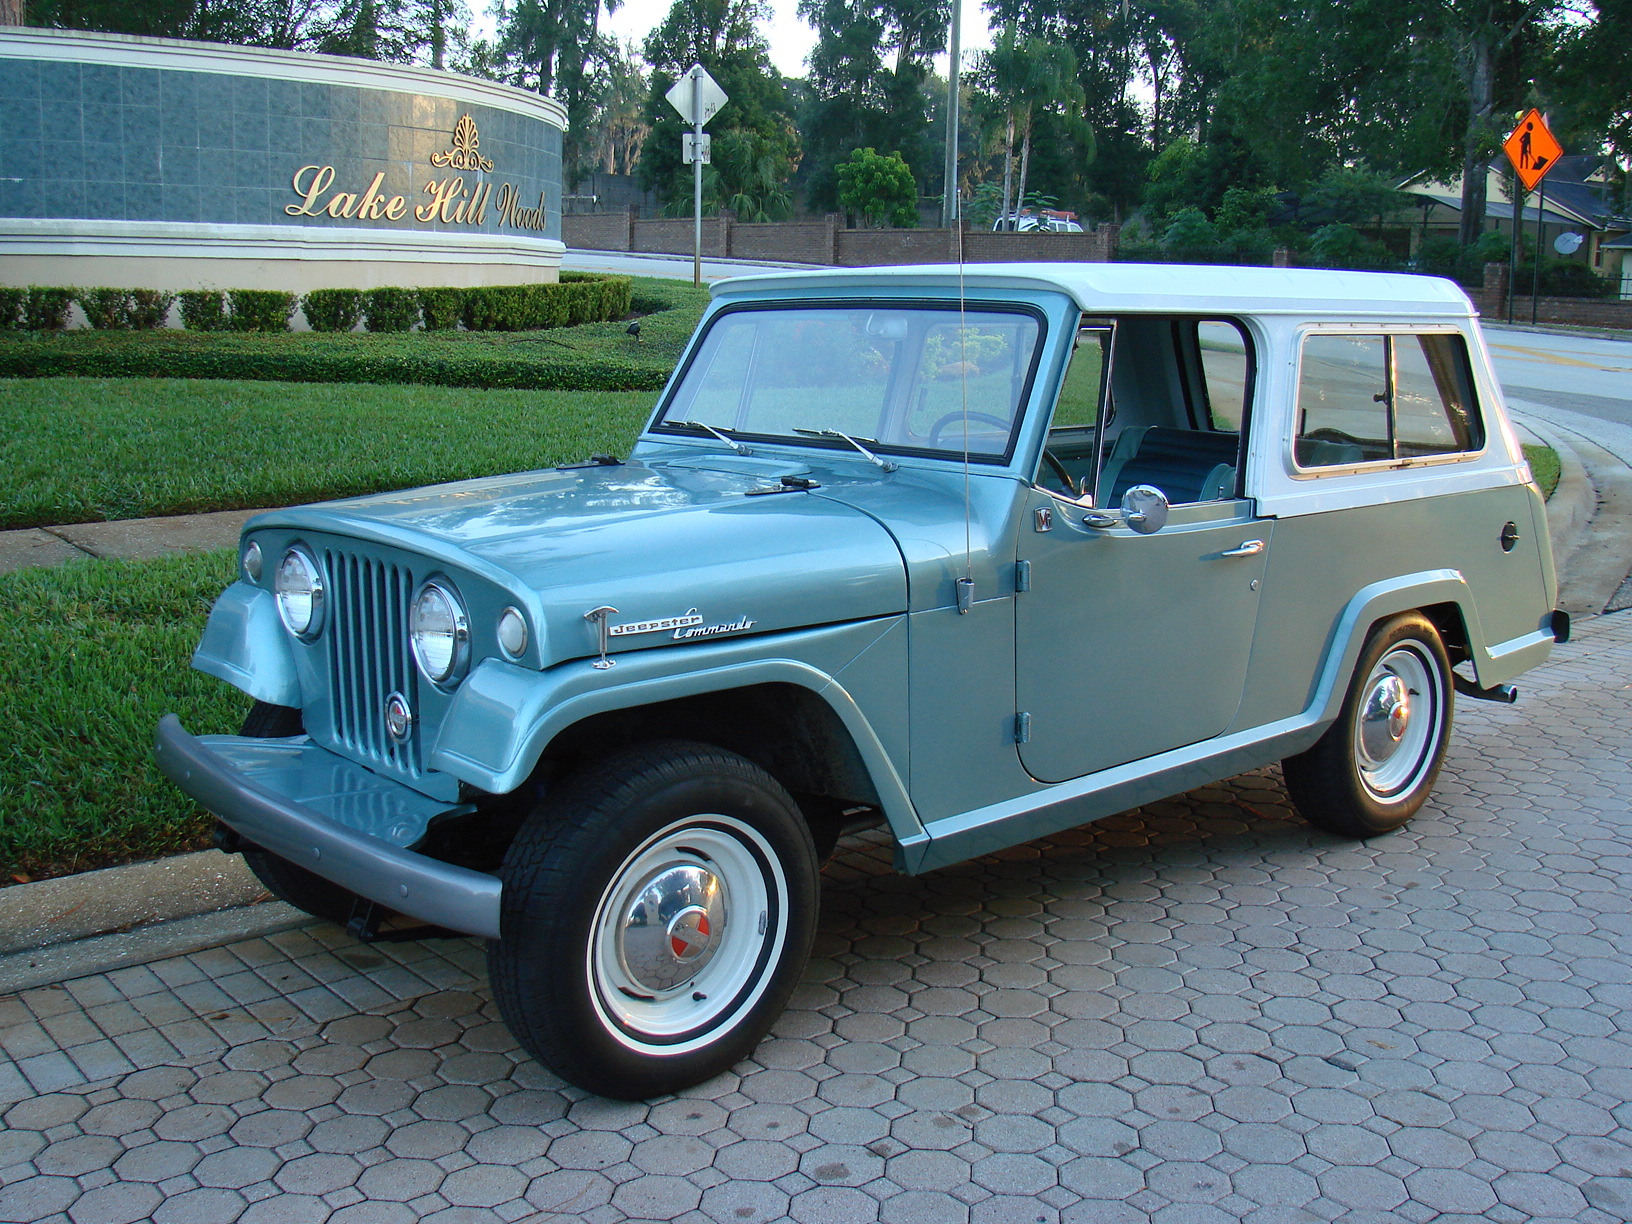 1967 Jeep Jeepster Commando Sold Vantage Sports Cars Vantage Sports Cars